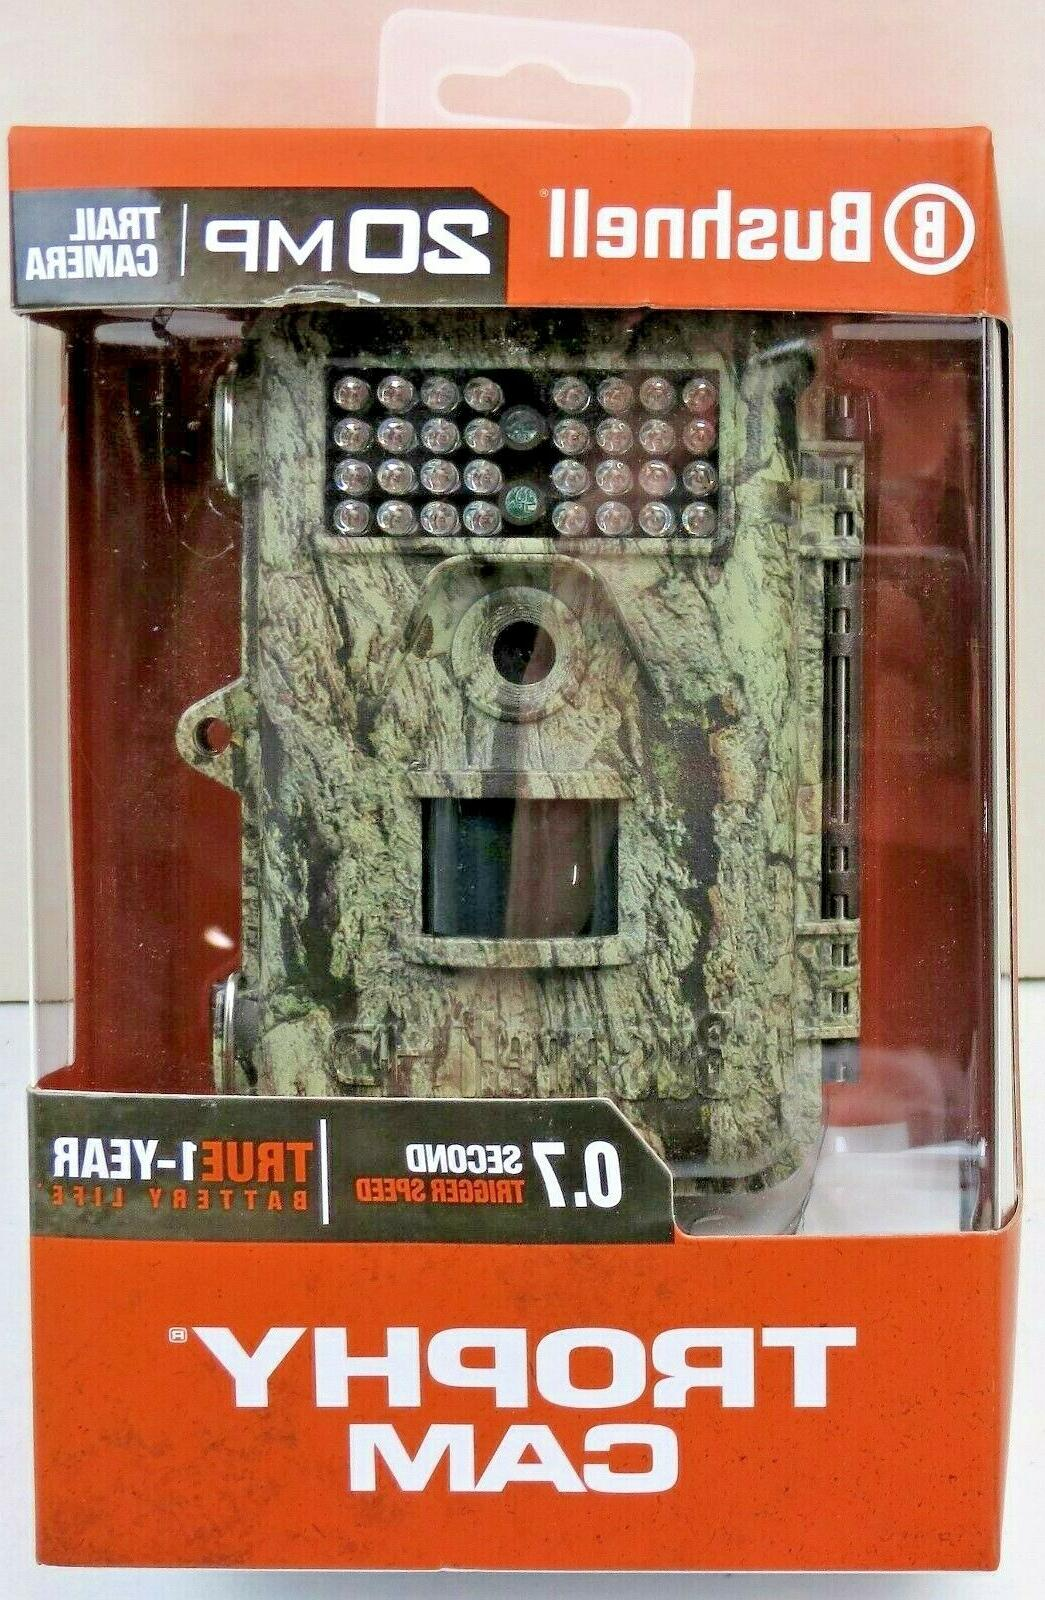 20mp trail camera trophy can hd low